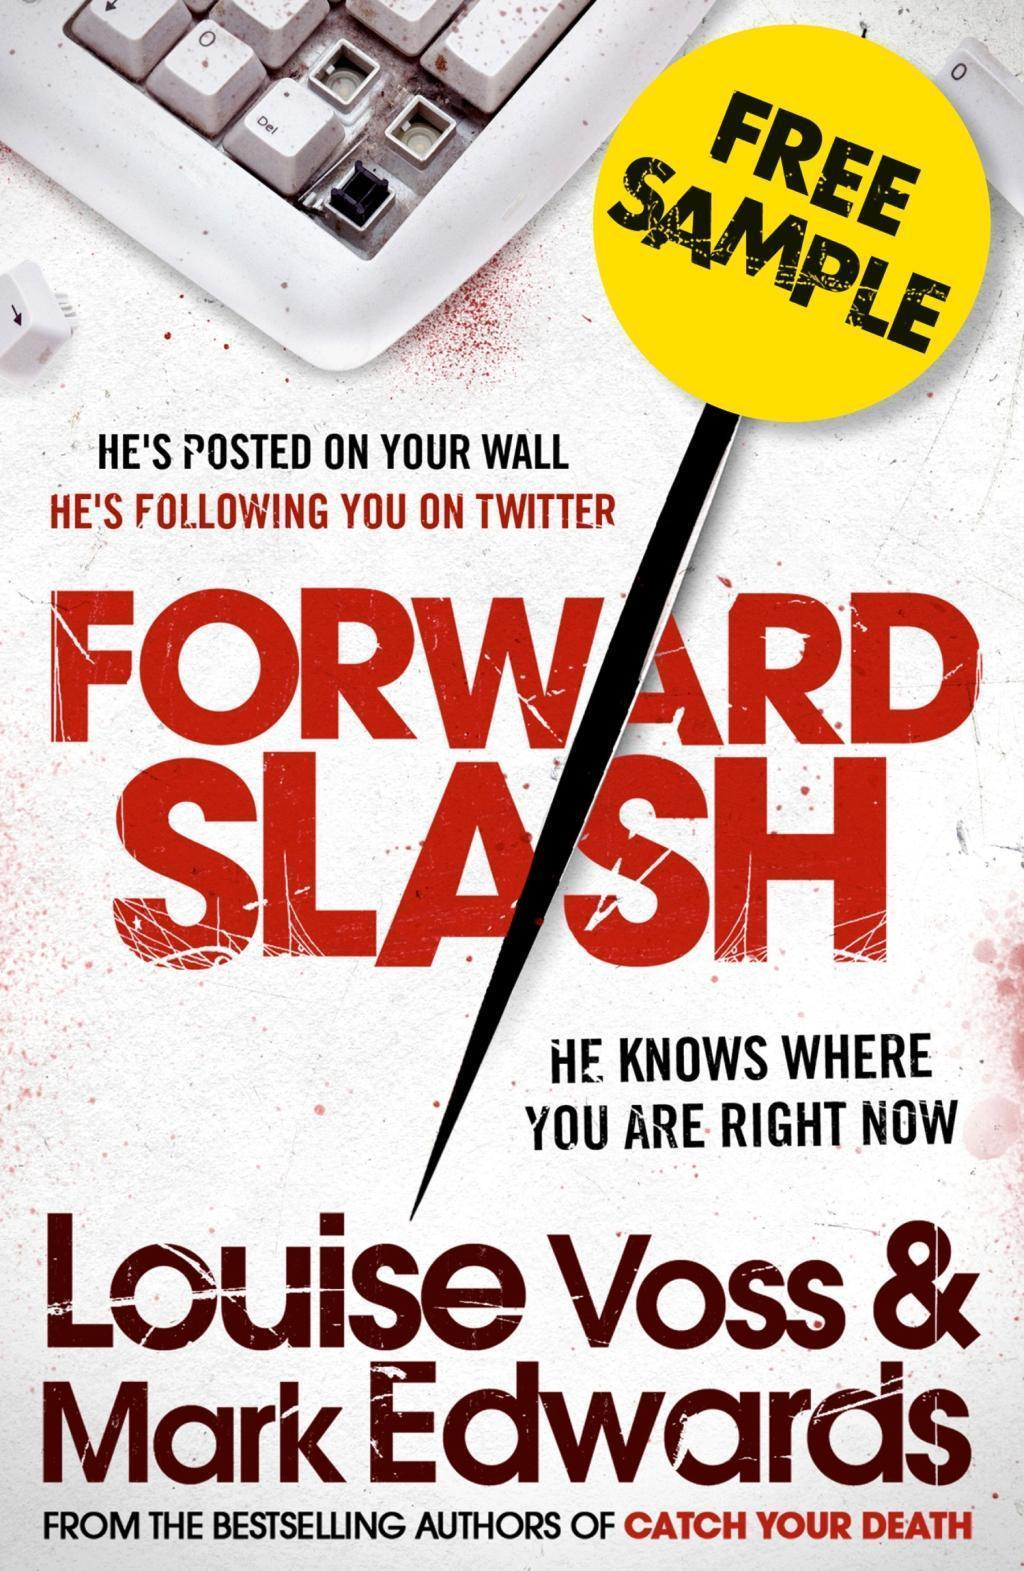 Forward Slash Free Sampler